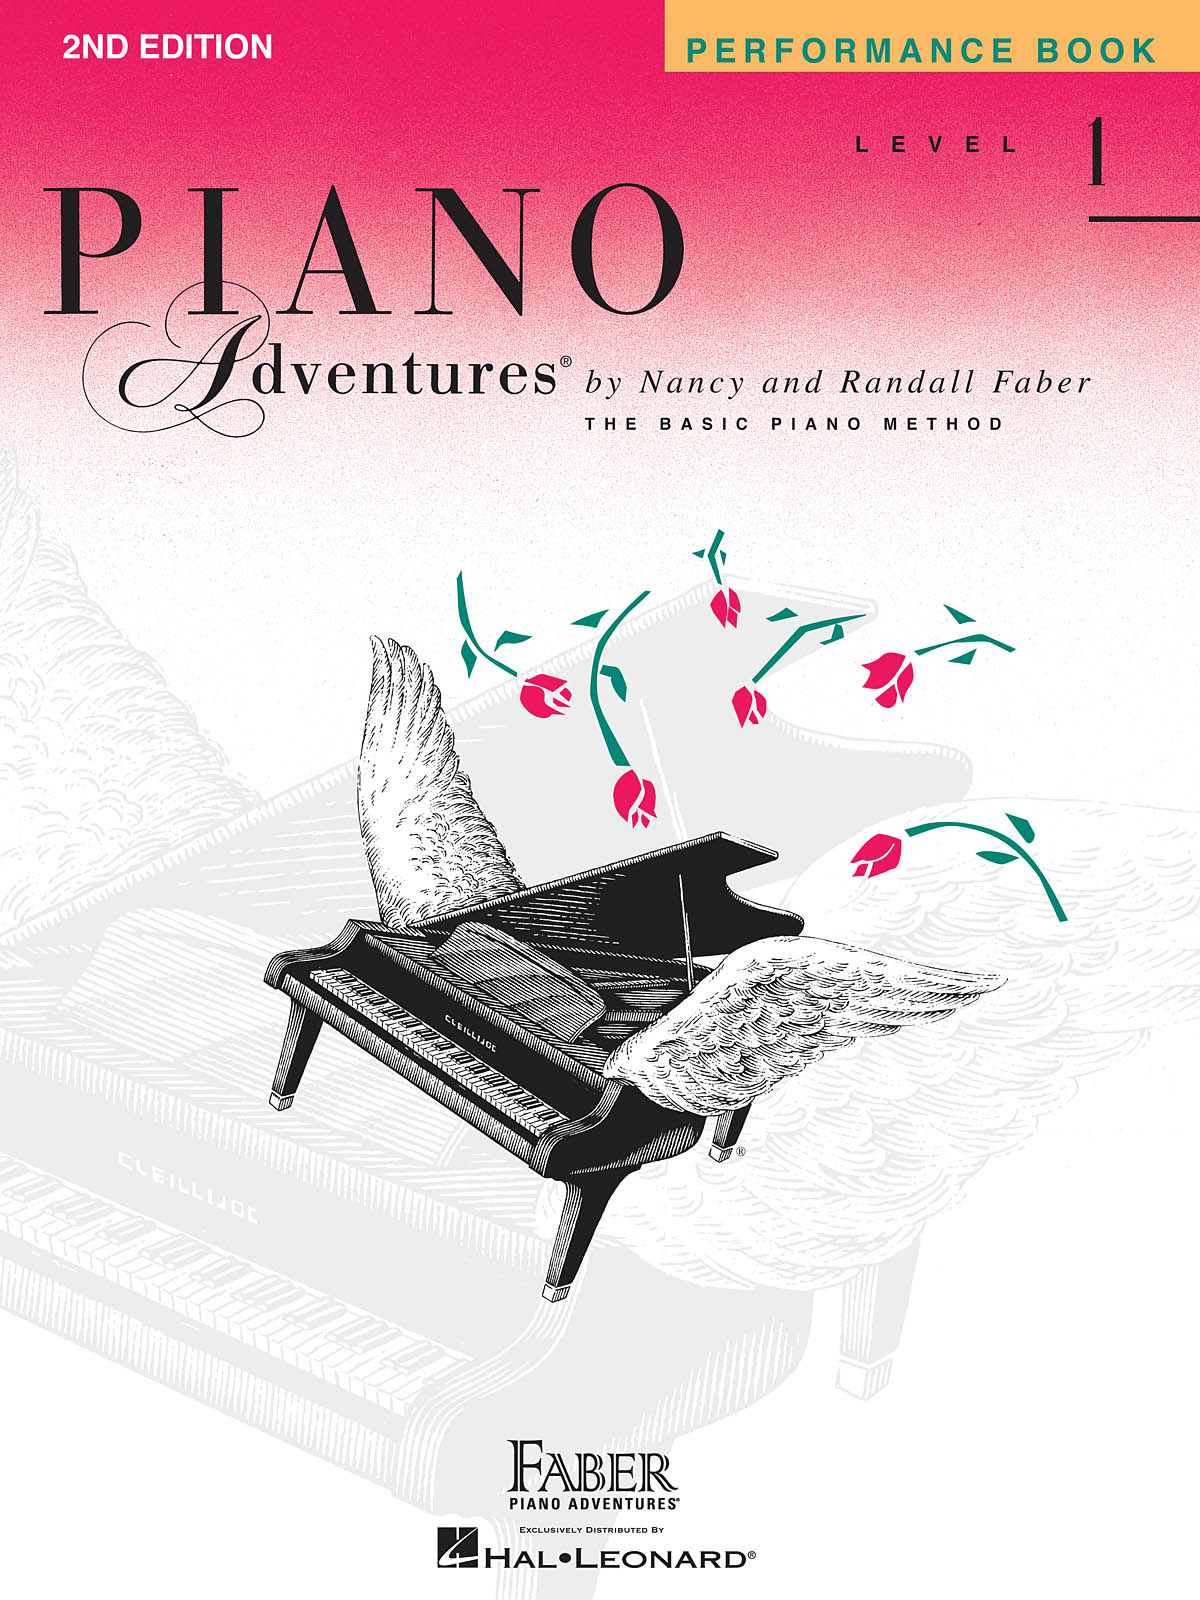 Faber Piano Adventures, Performance Book, Level 1